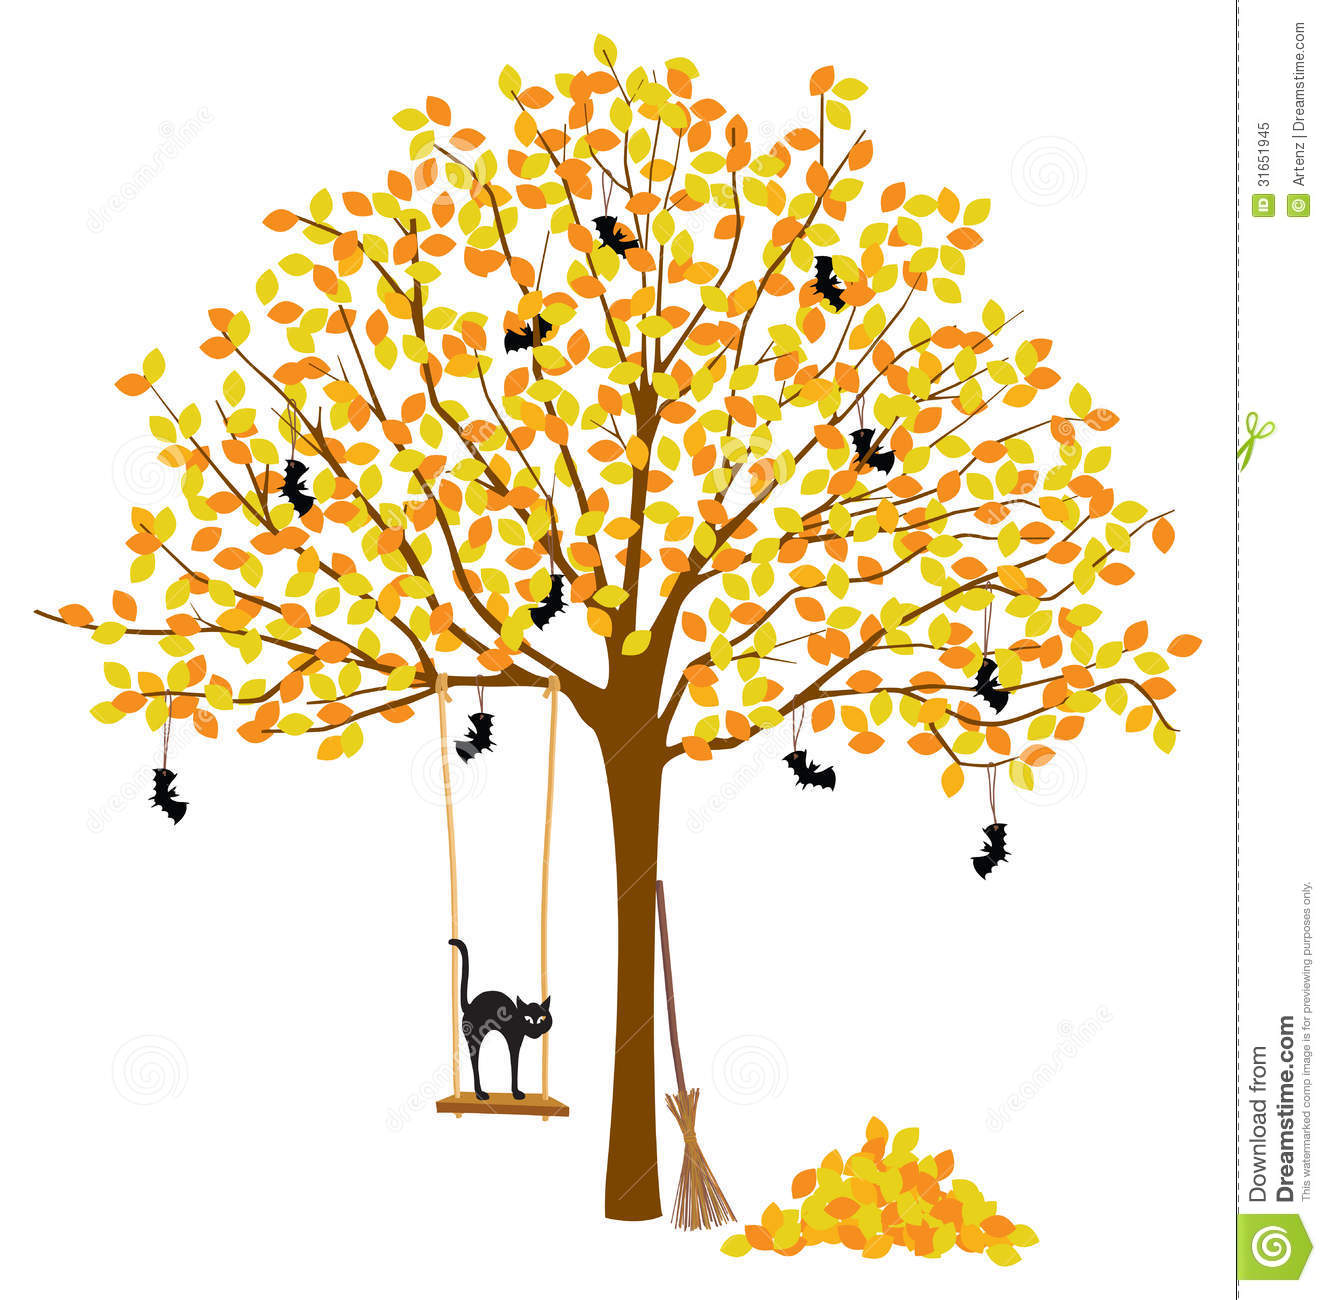 Tree With Autumn Leaves And Halloween Decorations Stock Vector Illustration Of Trunk Nature 31651945